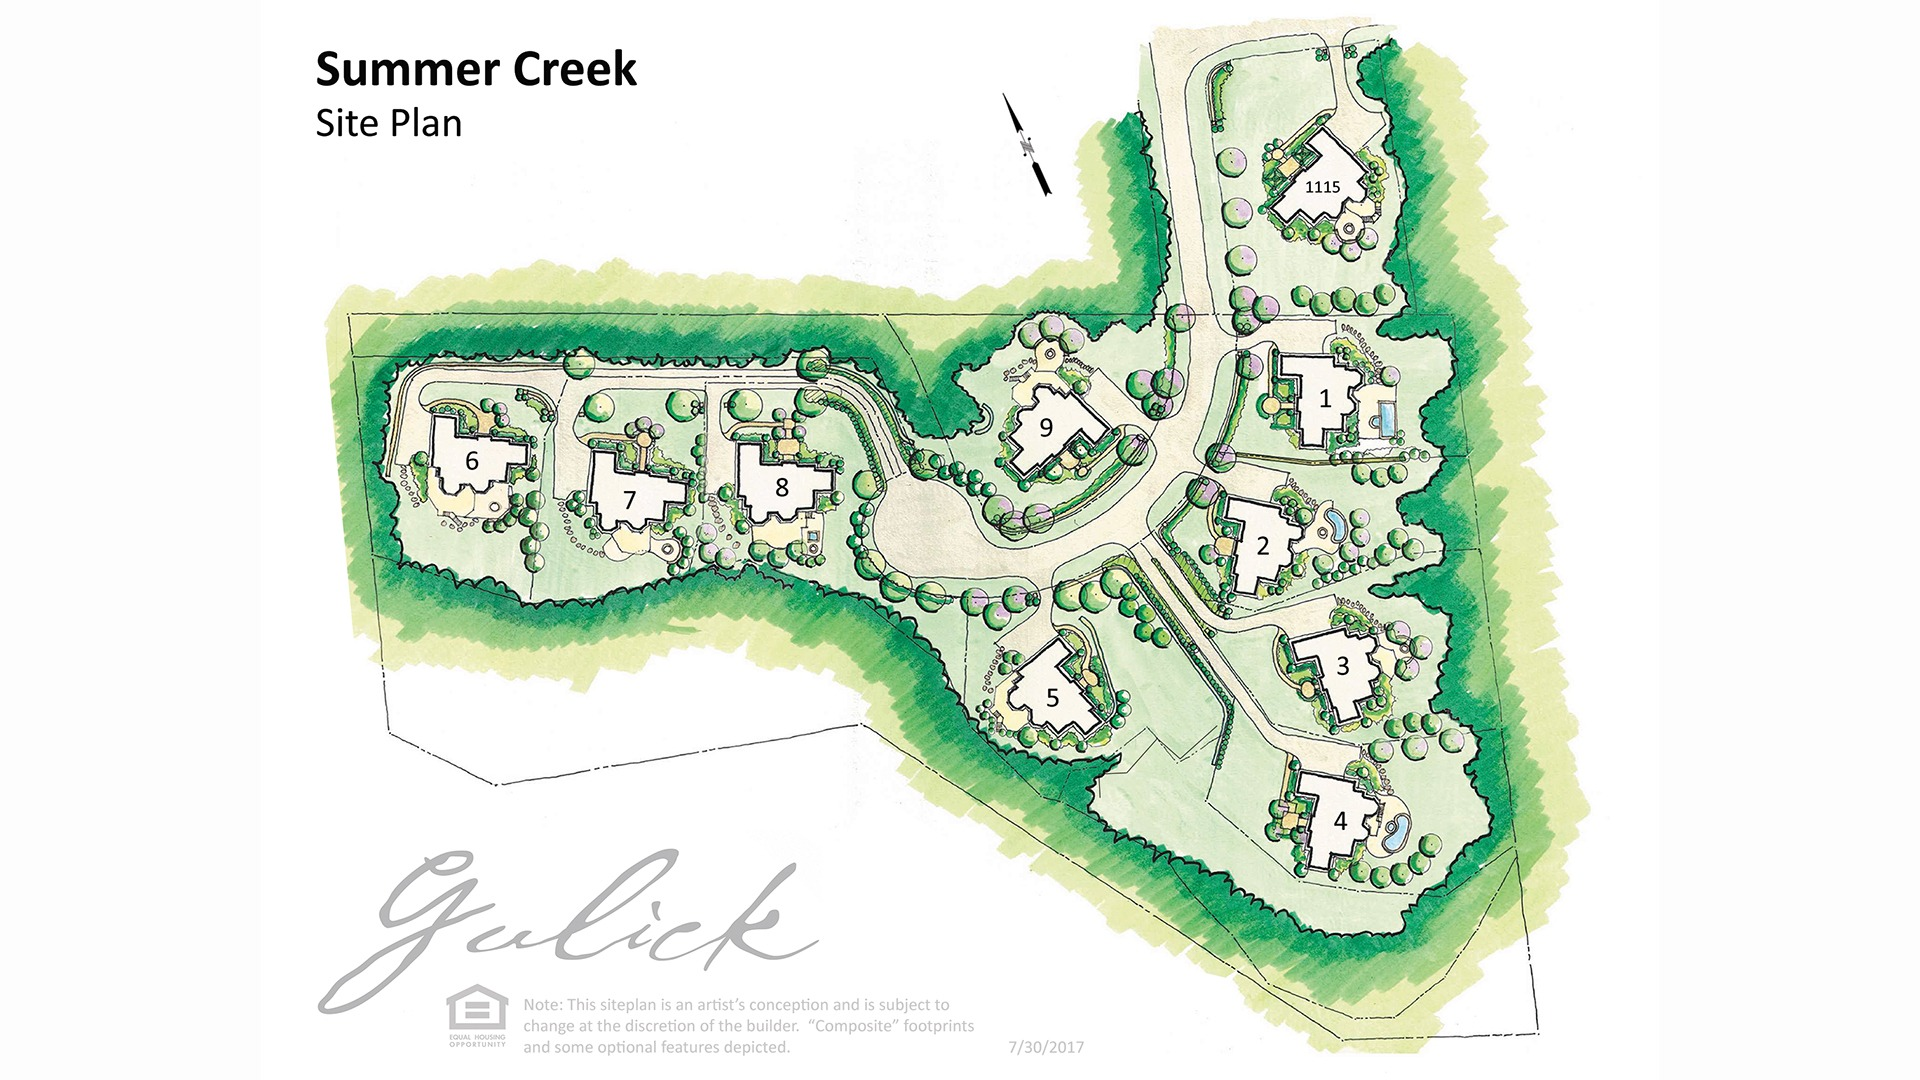 The site map for Summer Creek.